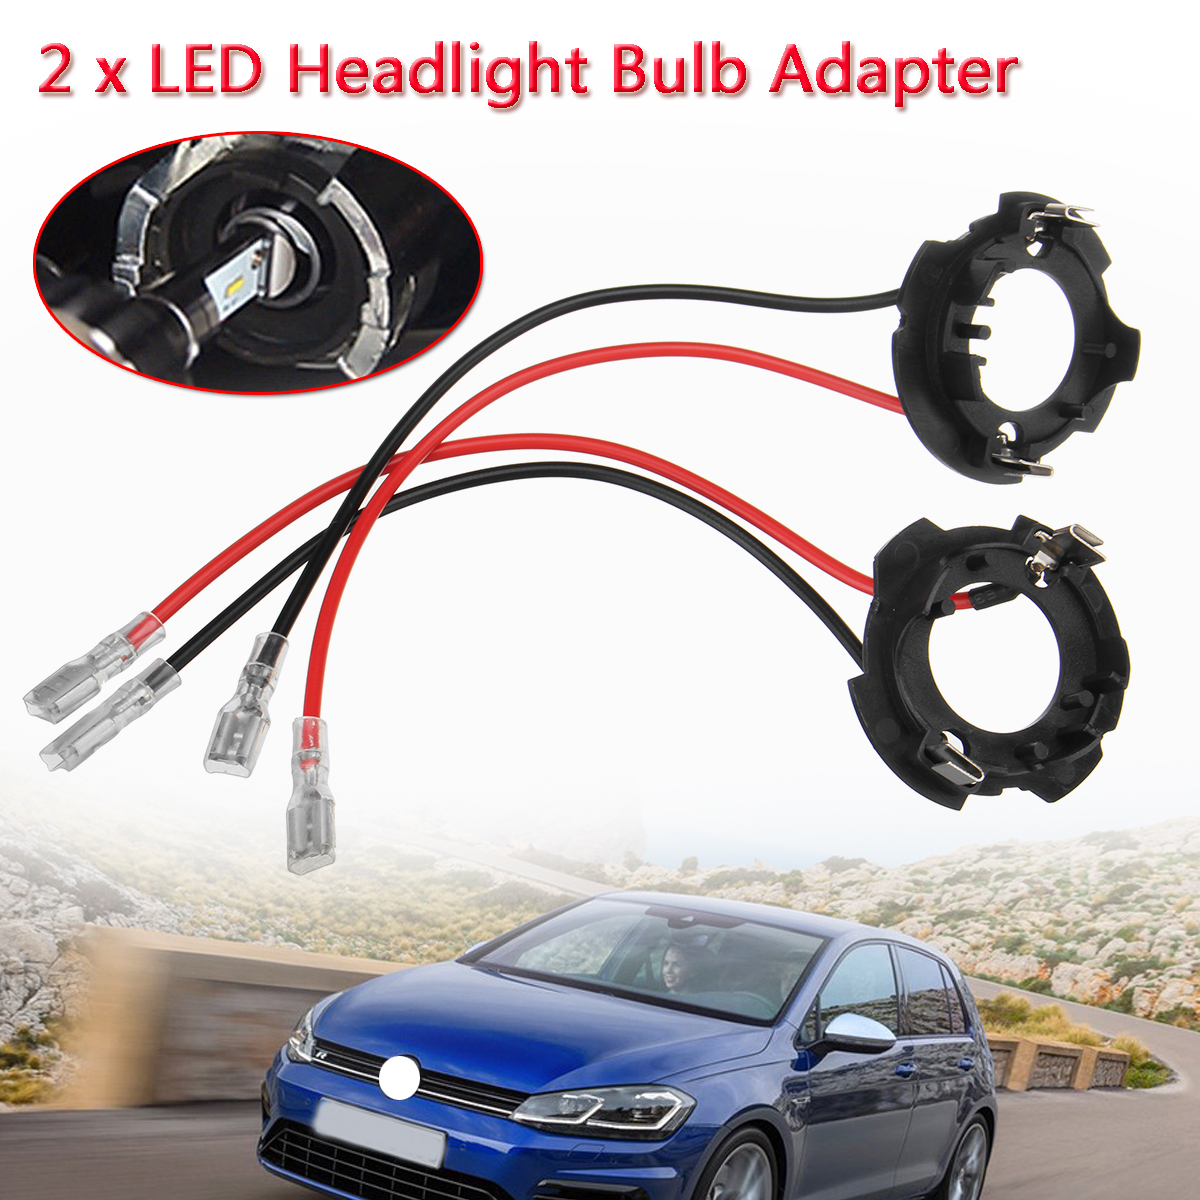 2x H7 LED Headlight Retainer Clip Bulb Base Holder Headlamp Socket Adapter  for Volkswagen for VW Golf 5 MK5 GTI Jetta-in Base from Automobiles &  Motorcycles ...